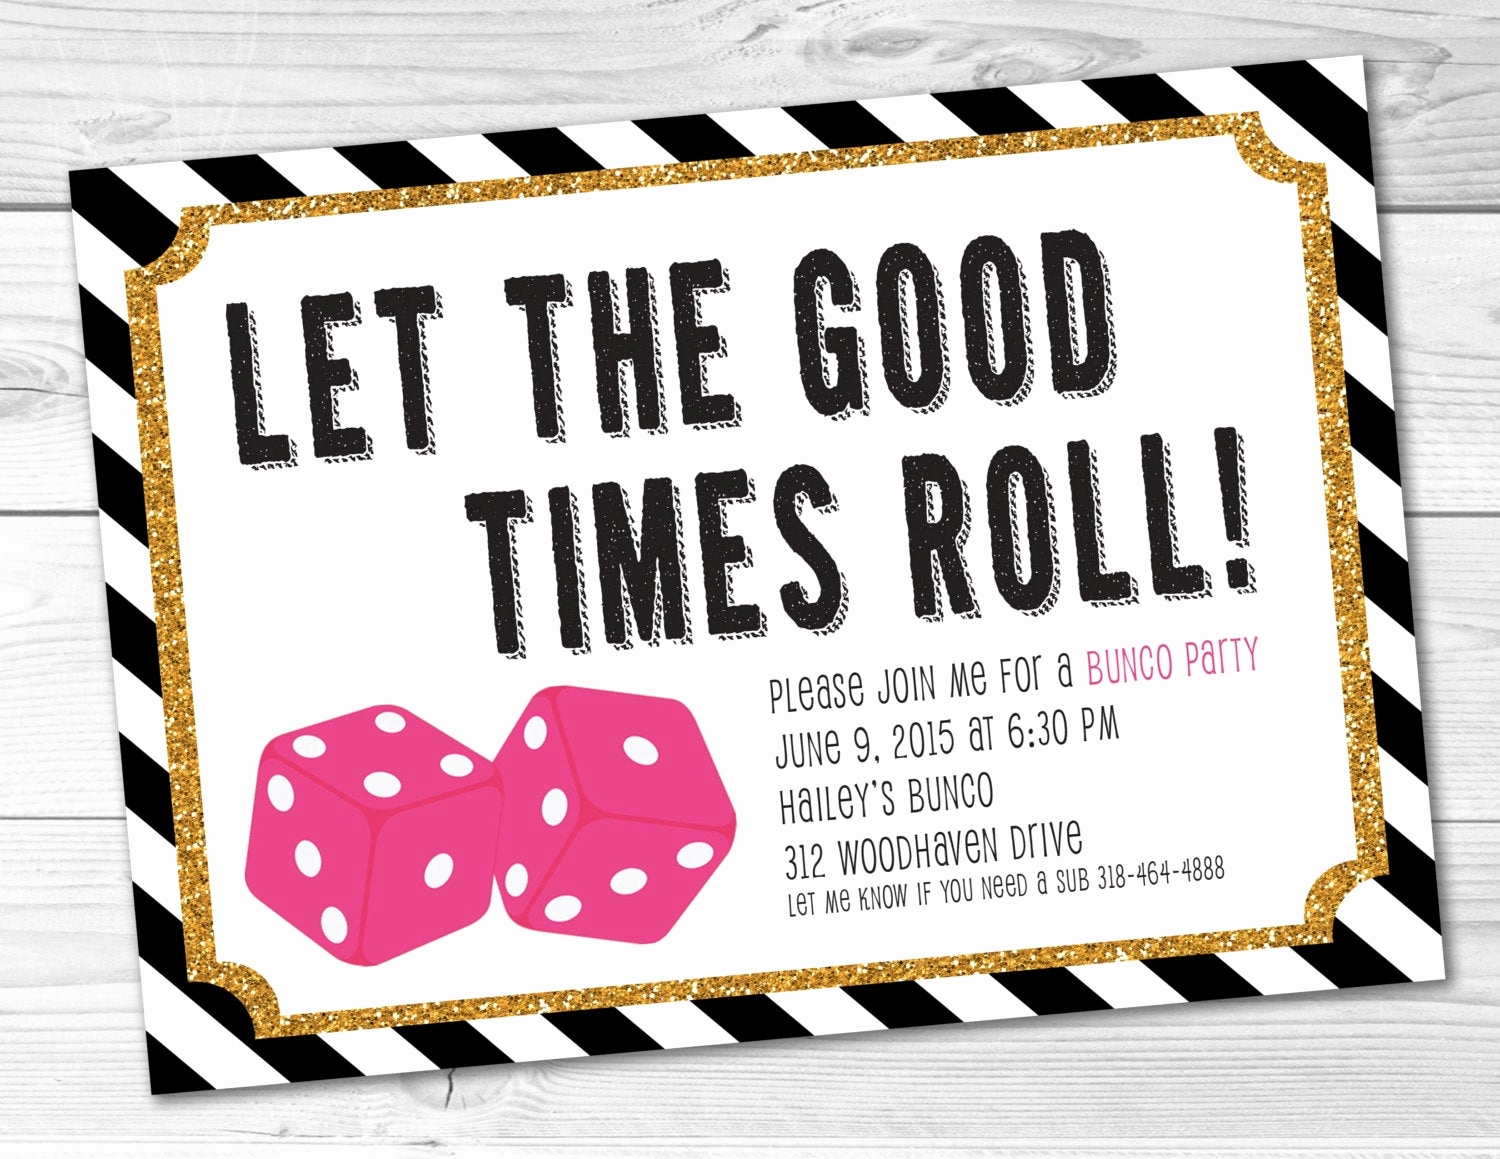 Game Night Invitation Template Awesome Bunco Game Night Party Invitation